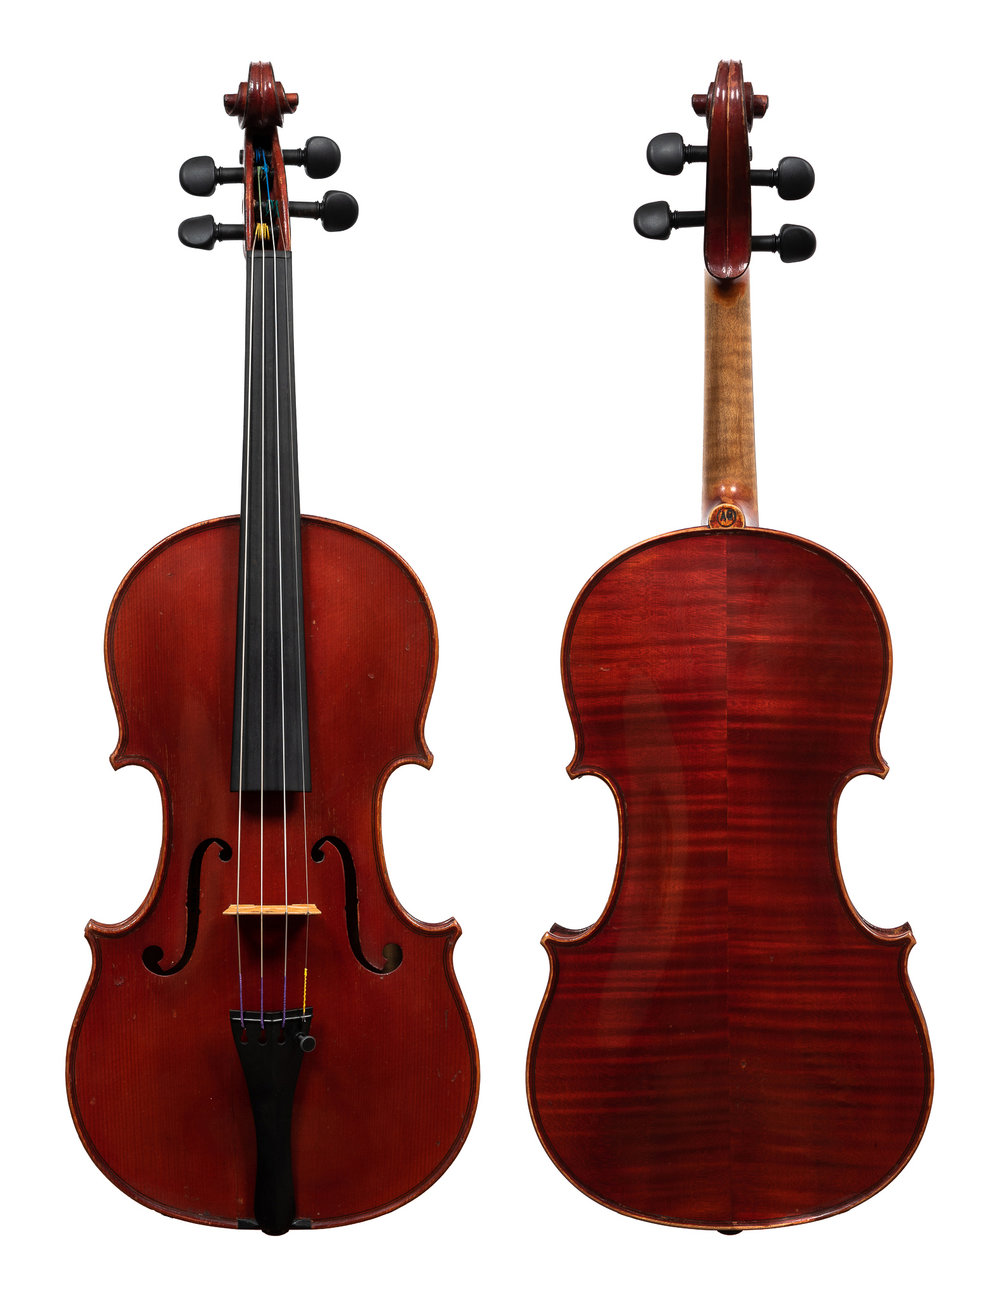 Copy of Acoulon & Blondelet Violin